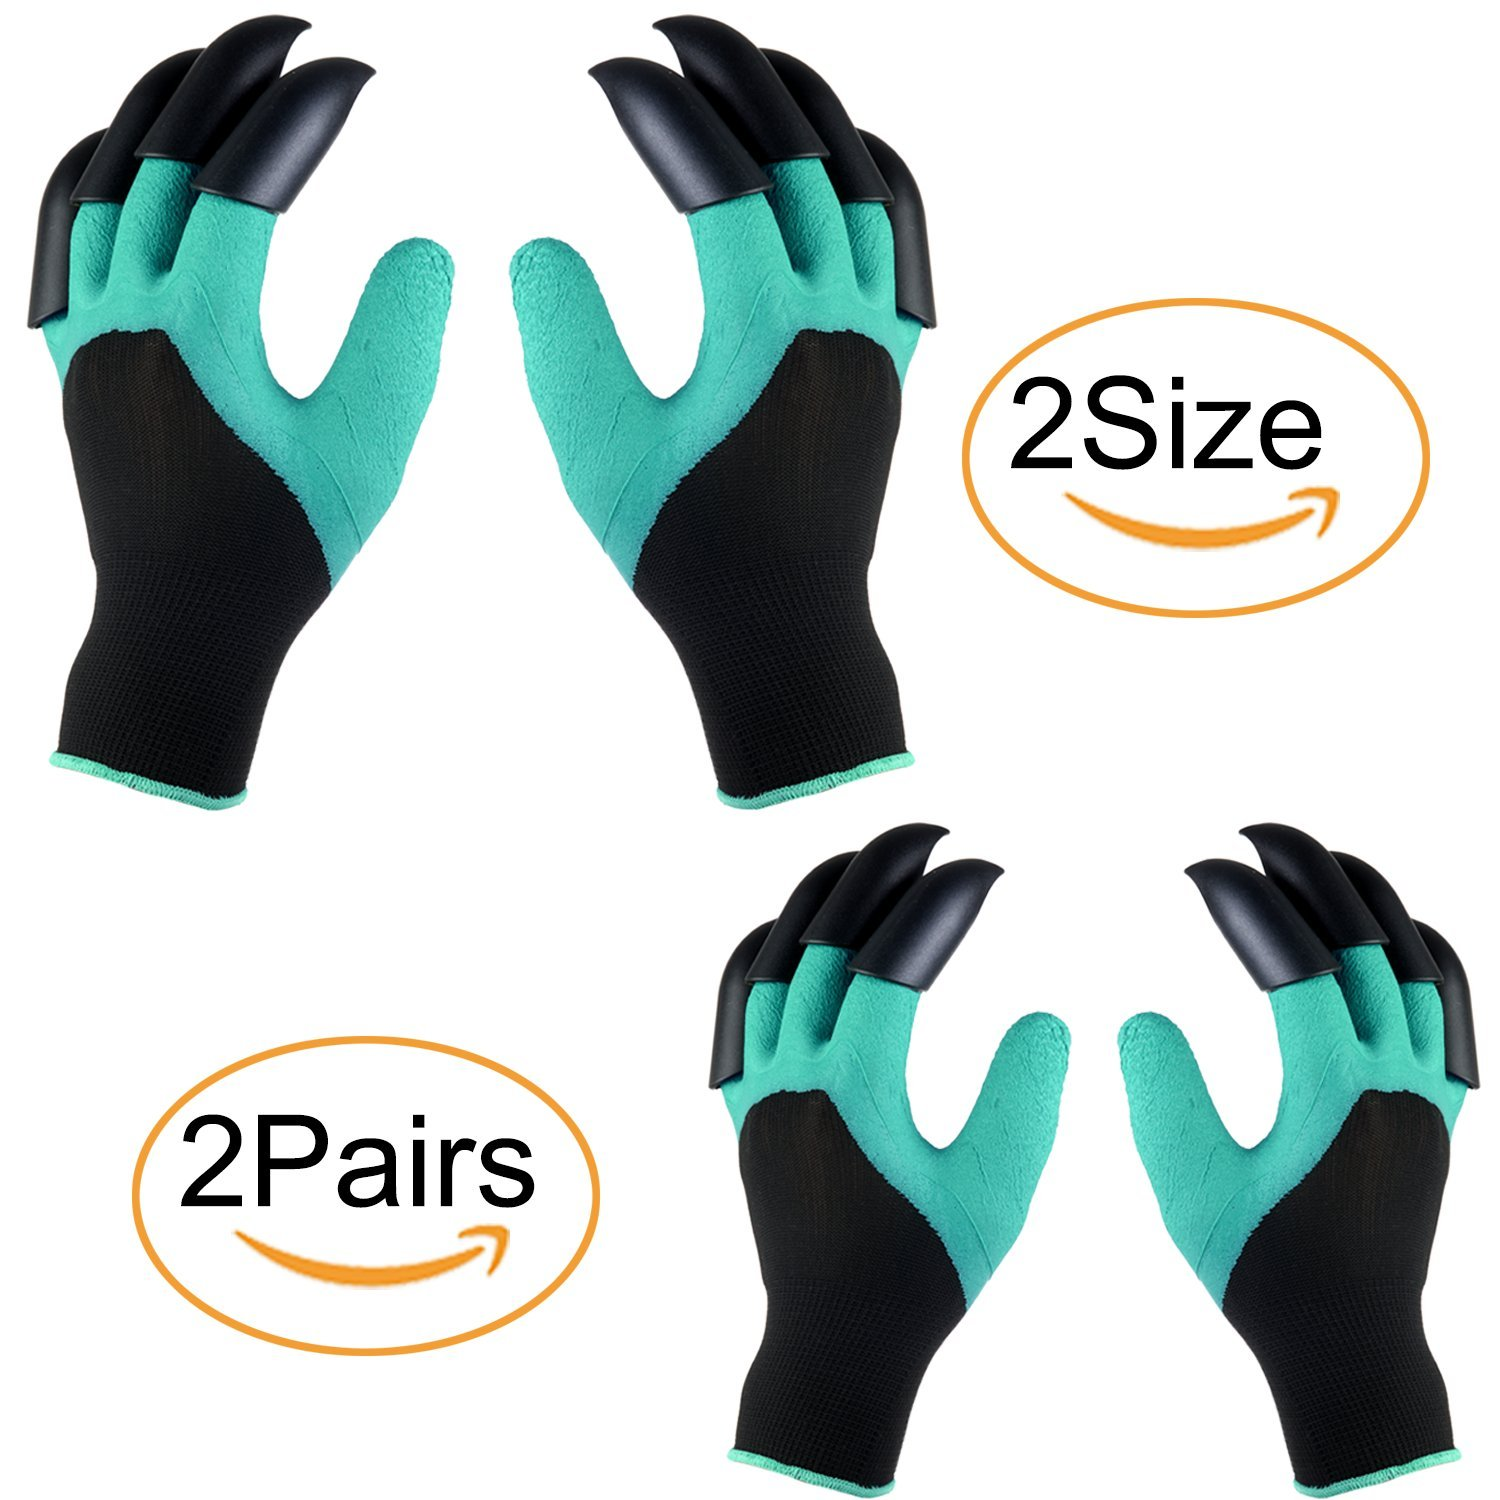 Face Forever Garden Genie Gloves - (2018 2 Pairs 2 Size Soft, Waterproof and Breathable Garden Gloves with Claw For Women&Men Plant, Dig or Fix Including 2 Pairs Gloves with Claws